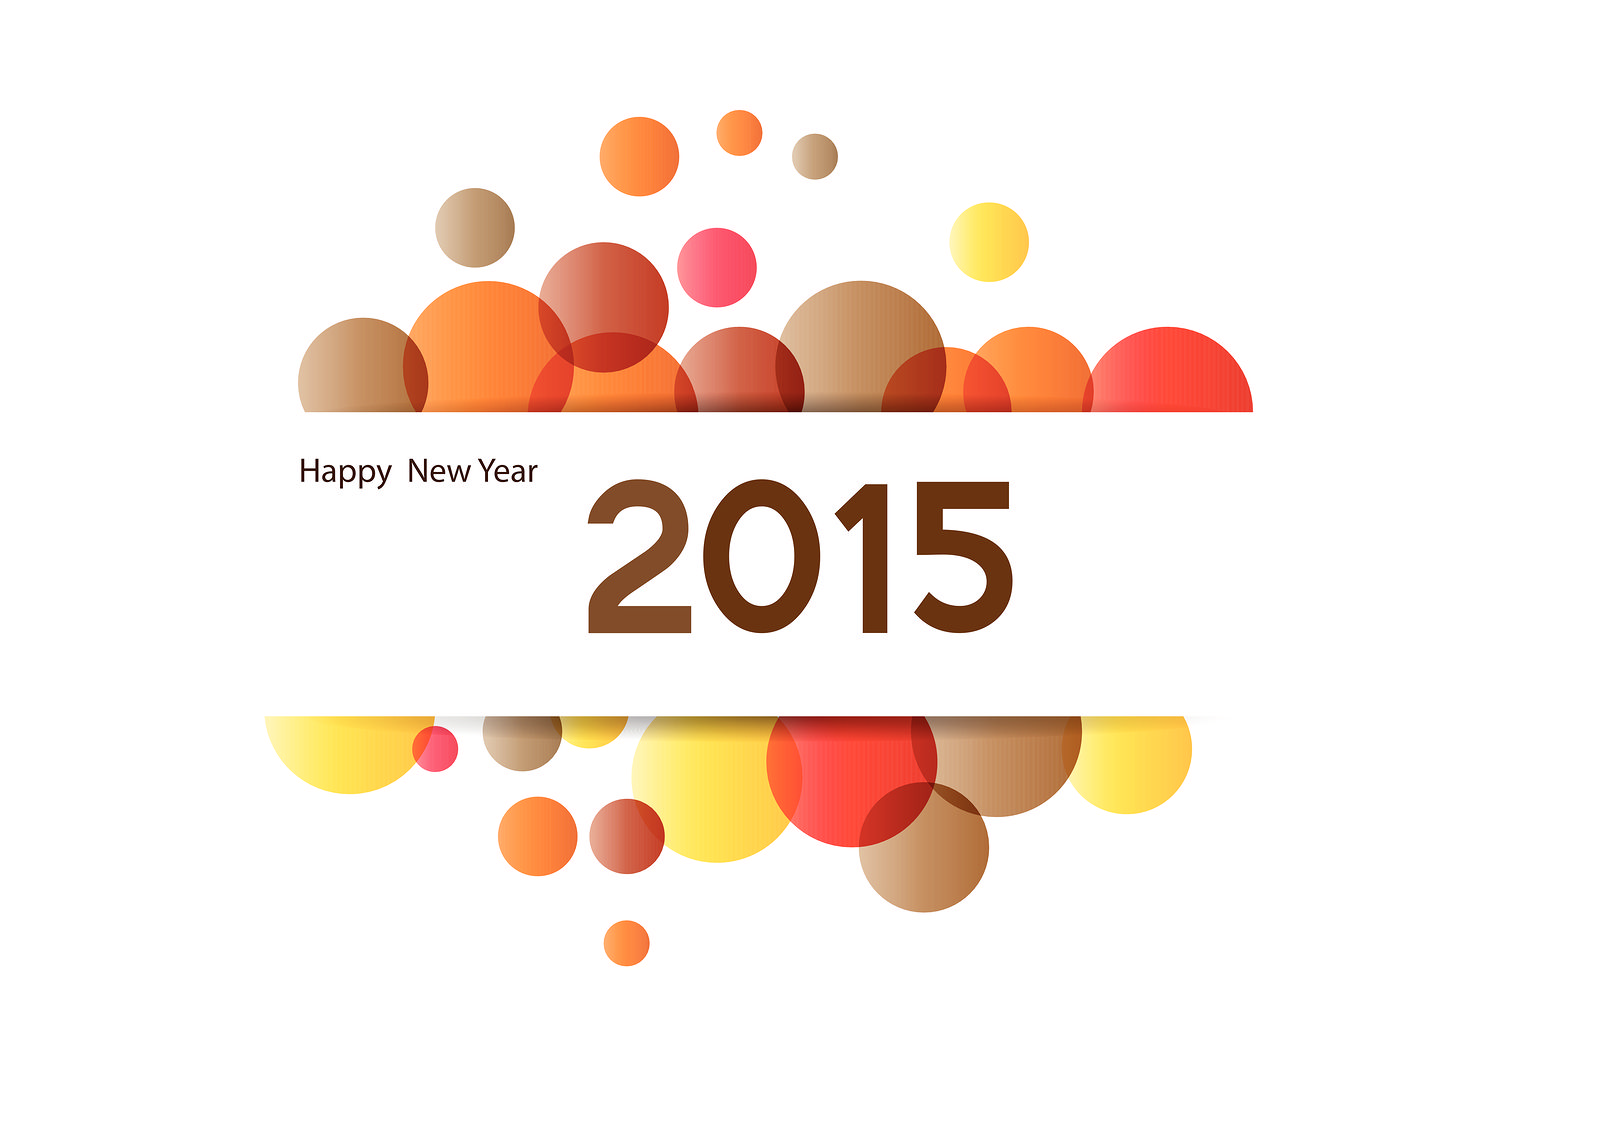 Download best new year greetings 2015 to your well wishers. These ...